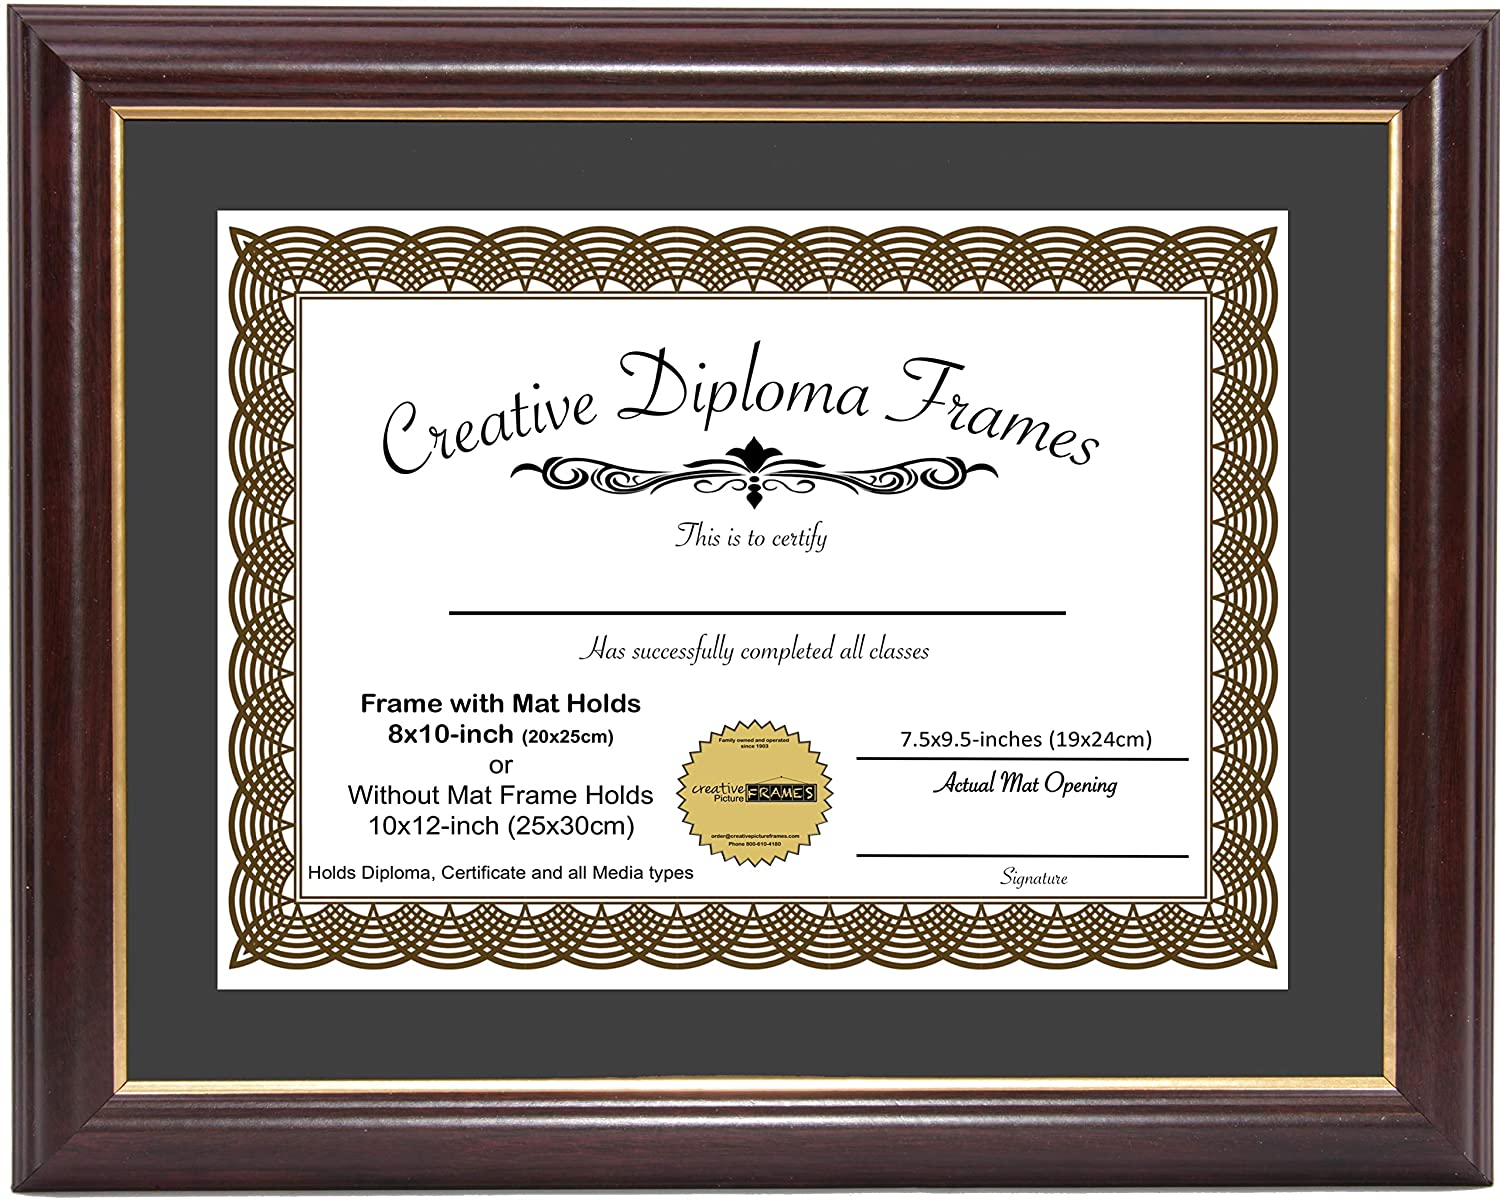 CreativePF [8x10-Diploma] Mahogany Frame with Gold Rim, Black Matting Holds 8x10-inch Documents with Glass and Installed Wall Hanger